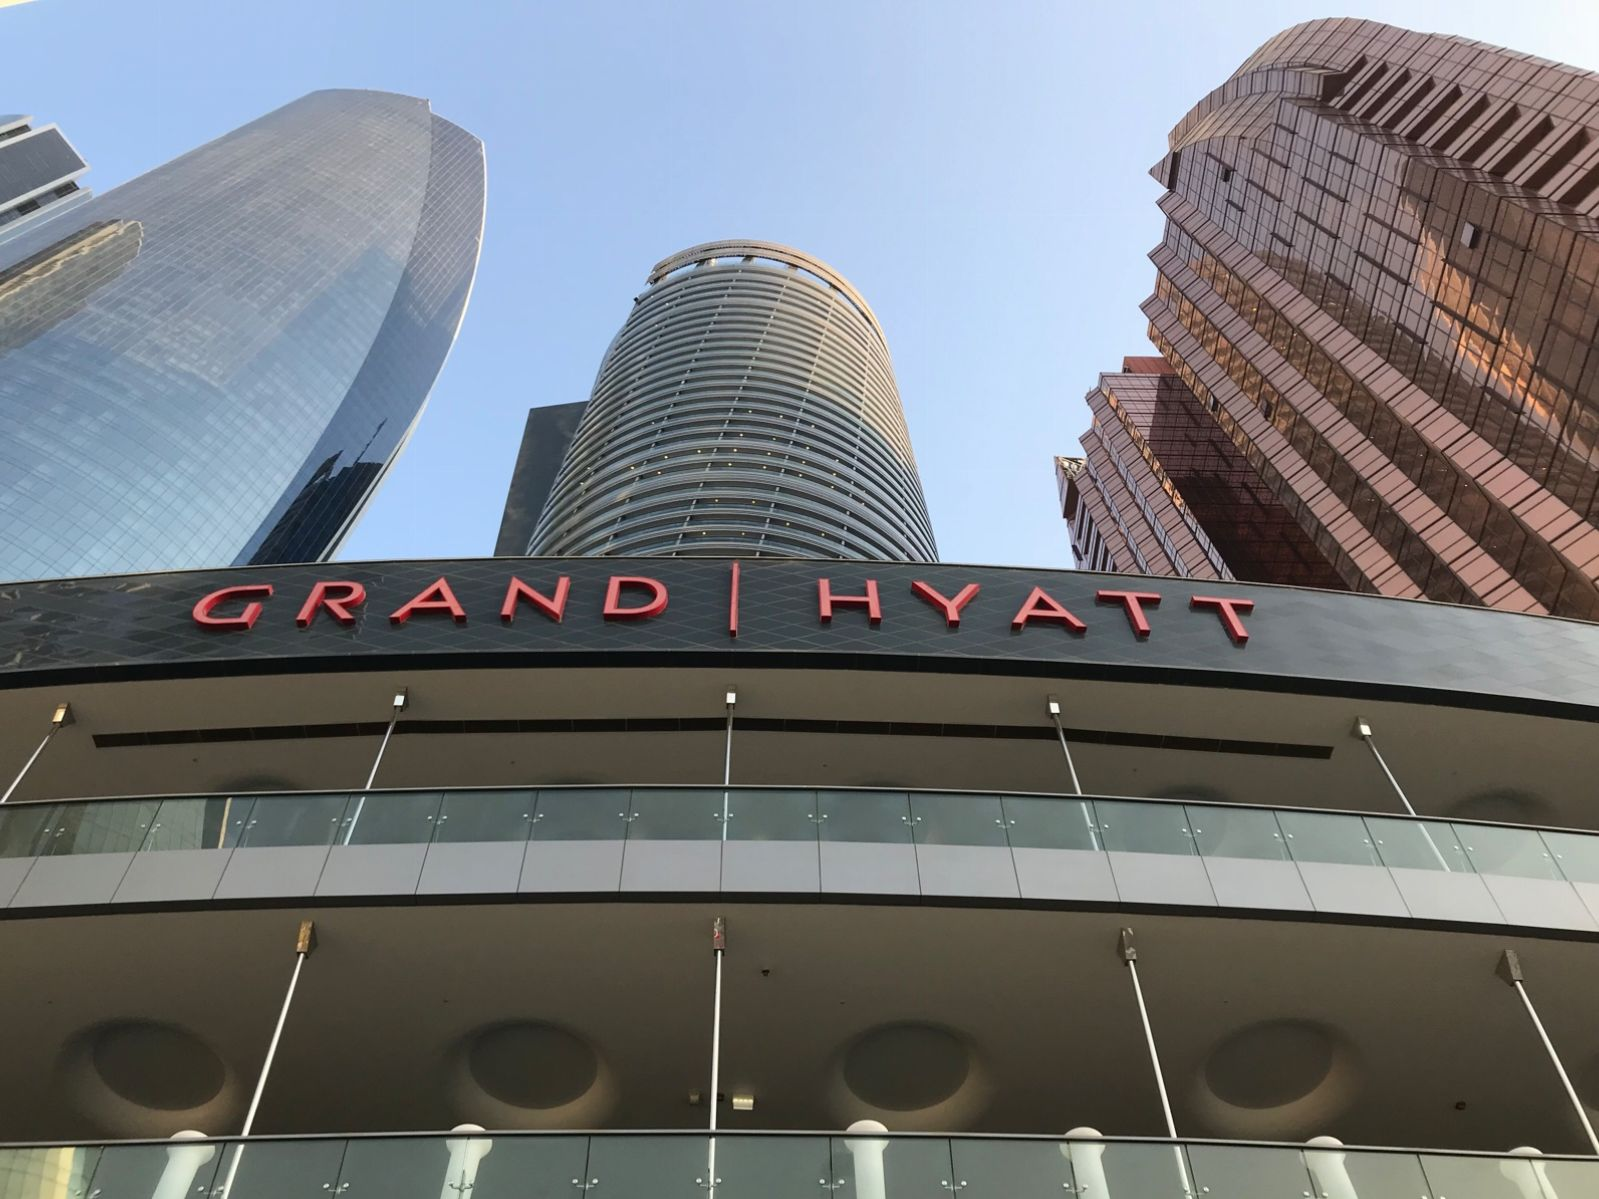 GRAND HYATT HOTEL - ABU DHABI (UNITED ARAB EMIRATES)